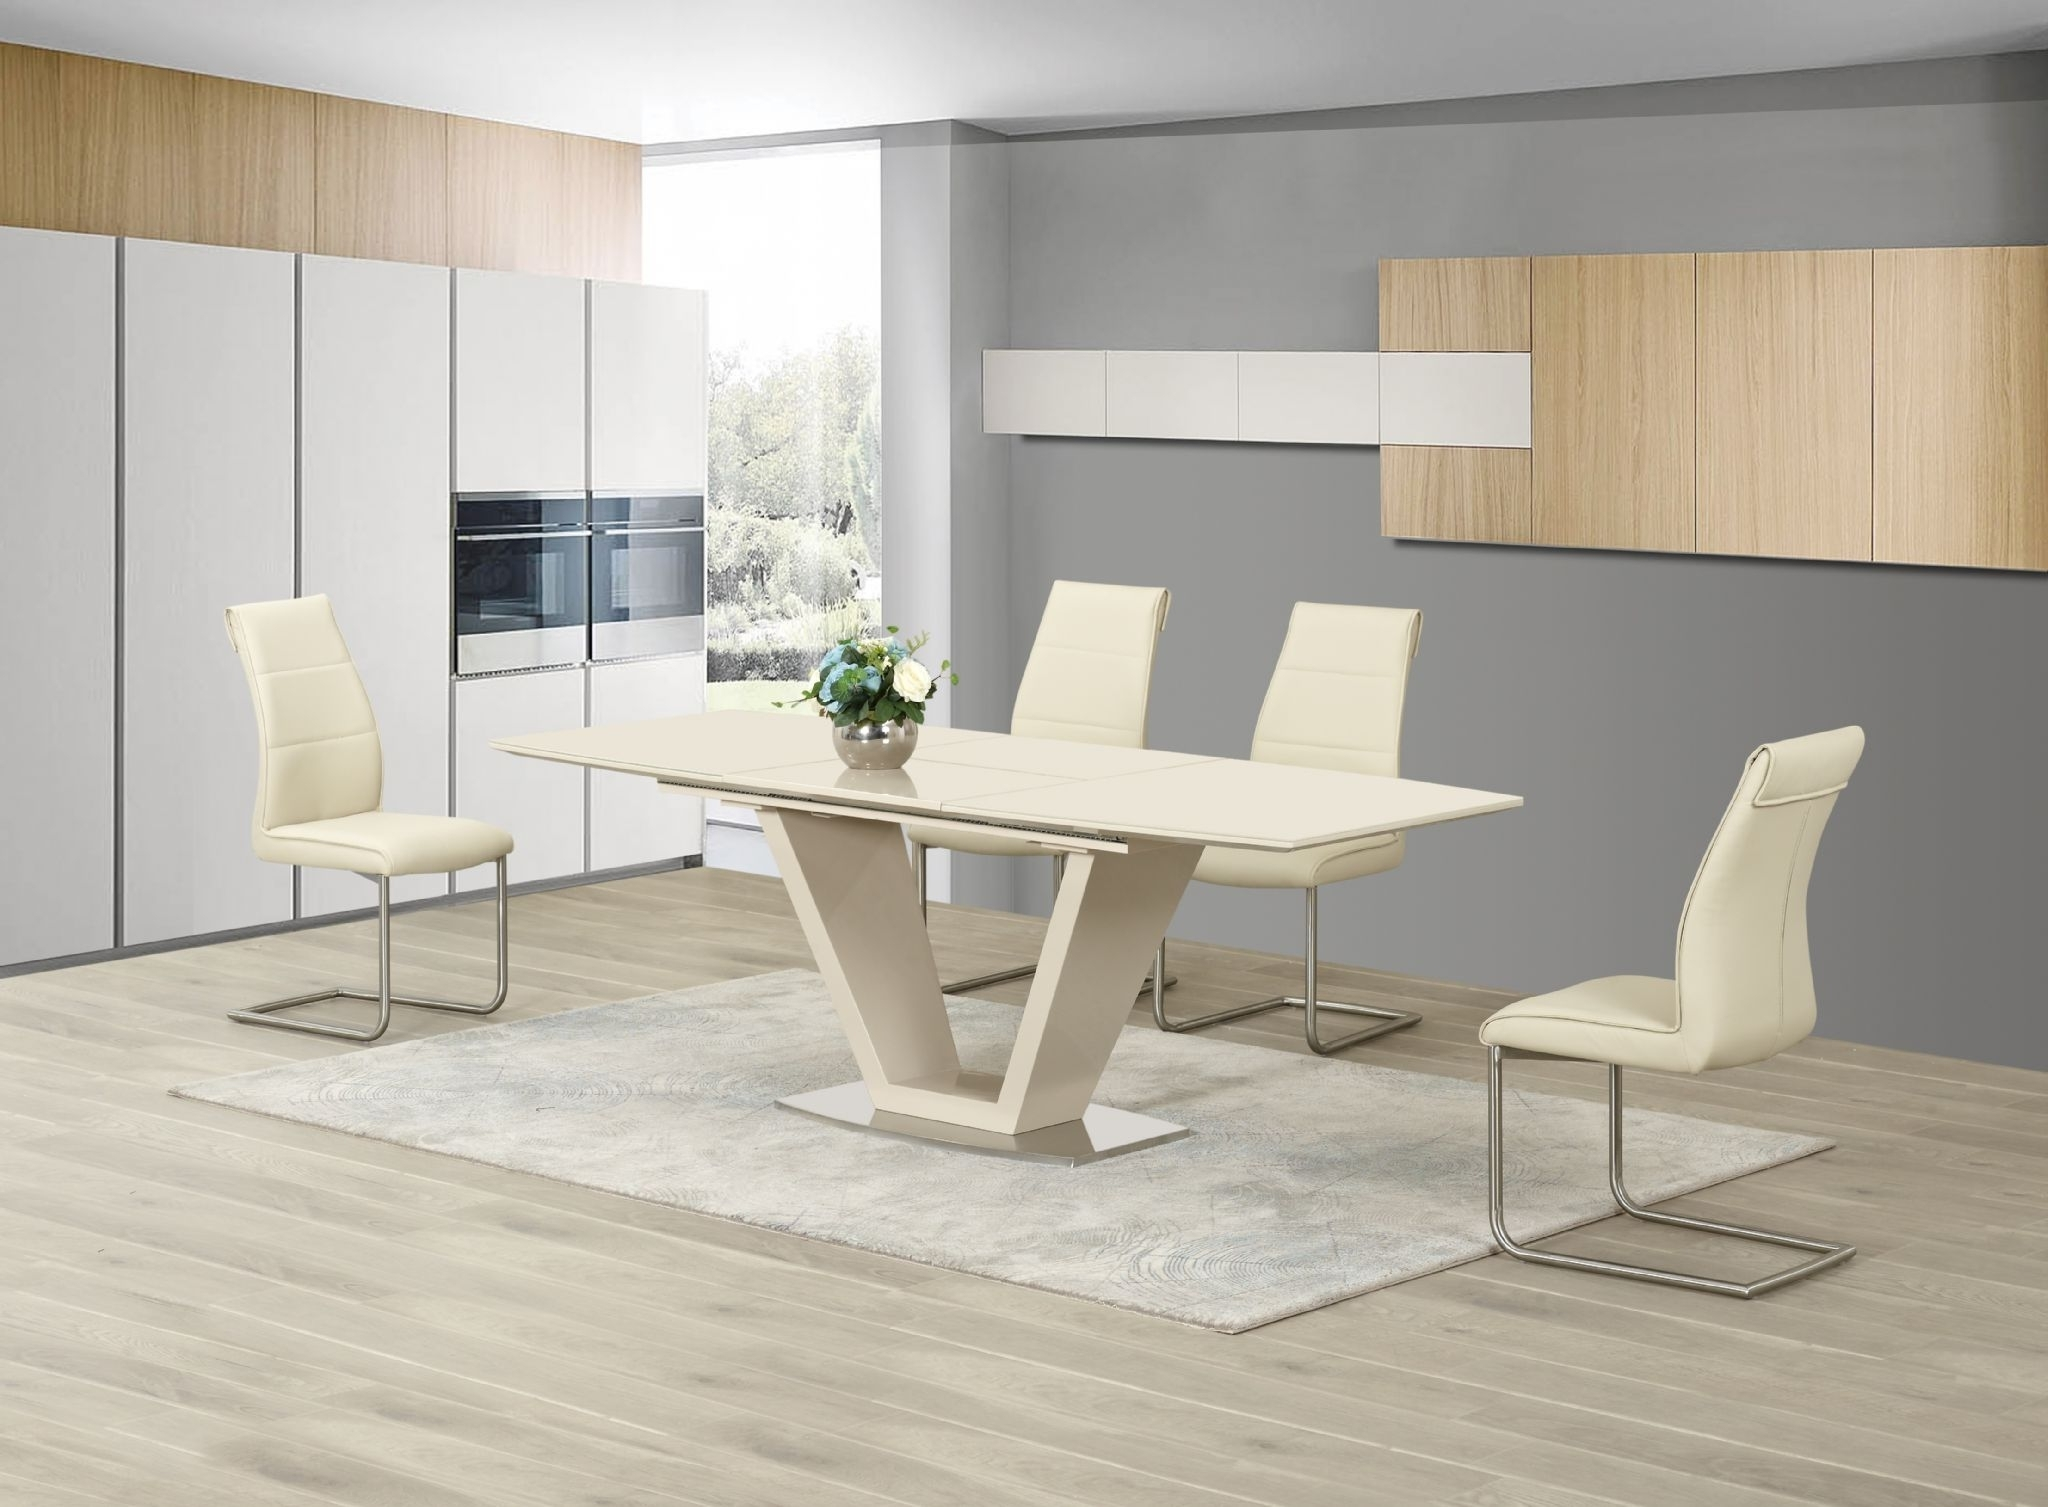 Newest Dining Chrome Extraordinary Argos Glass Sets Table Extending Gumtree Throughout Small White Extending Dining Tables (View 23 of 25)